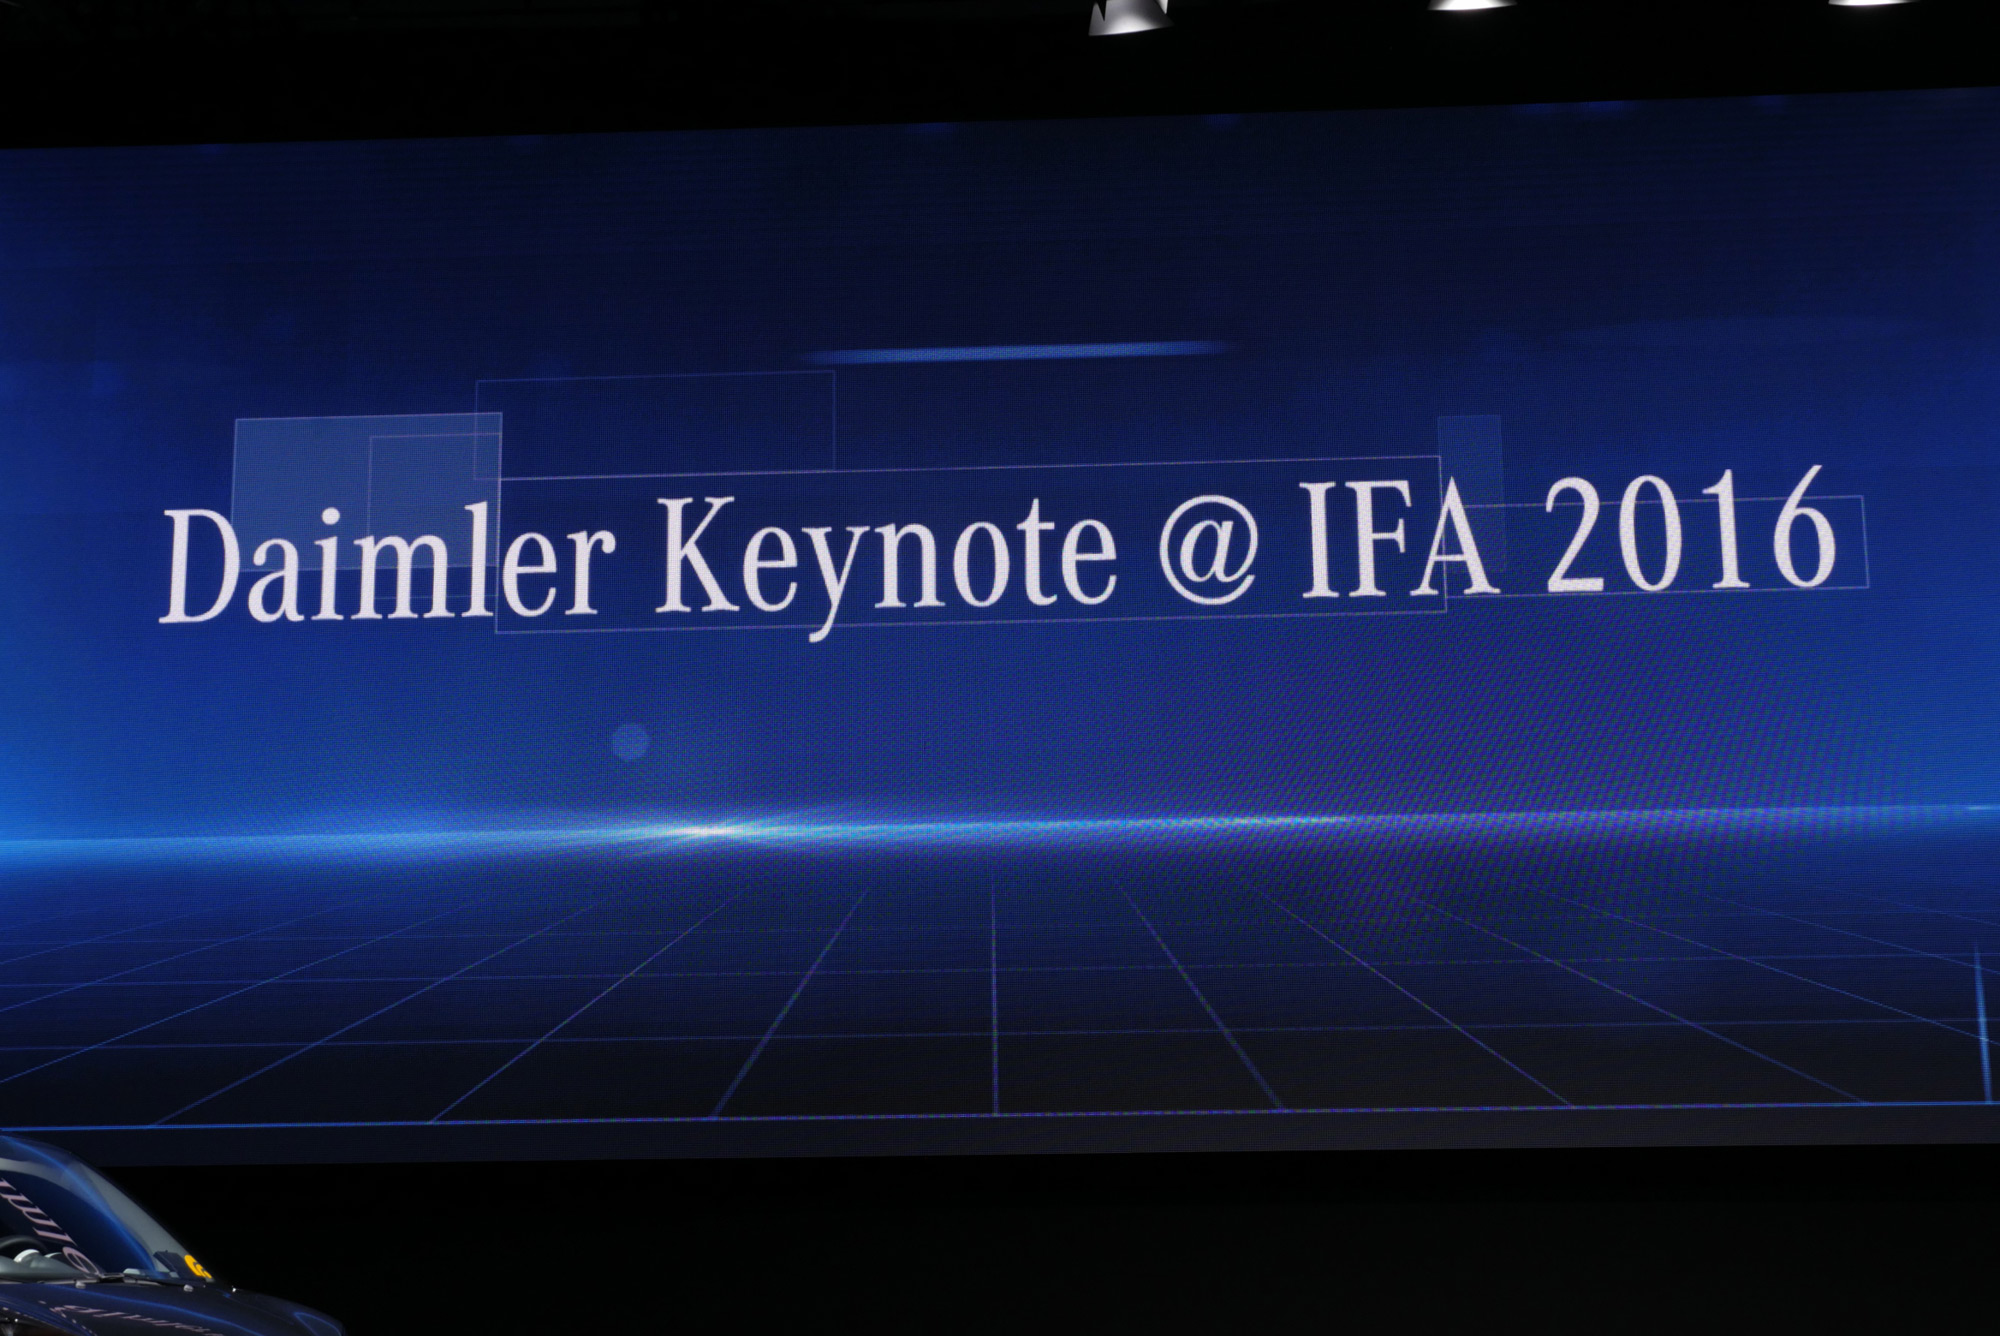 Mercedes-Benz IFA 2016 Keynote